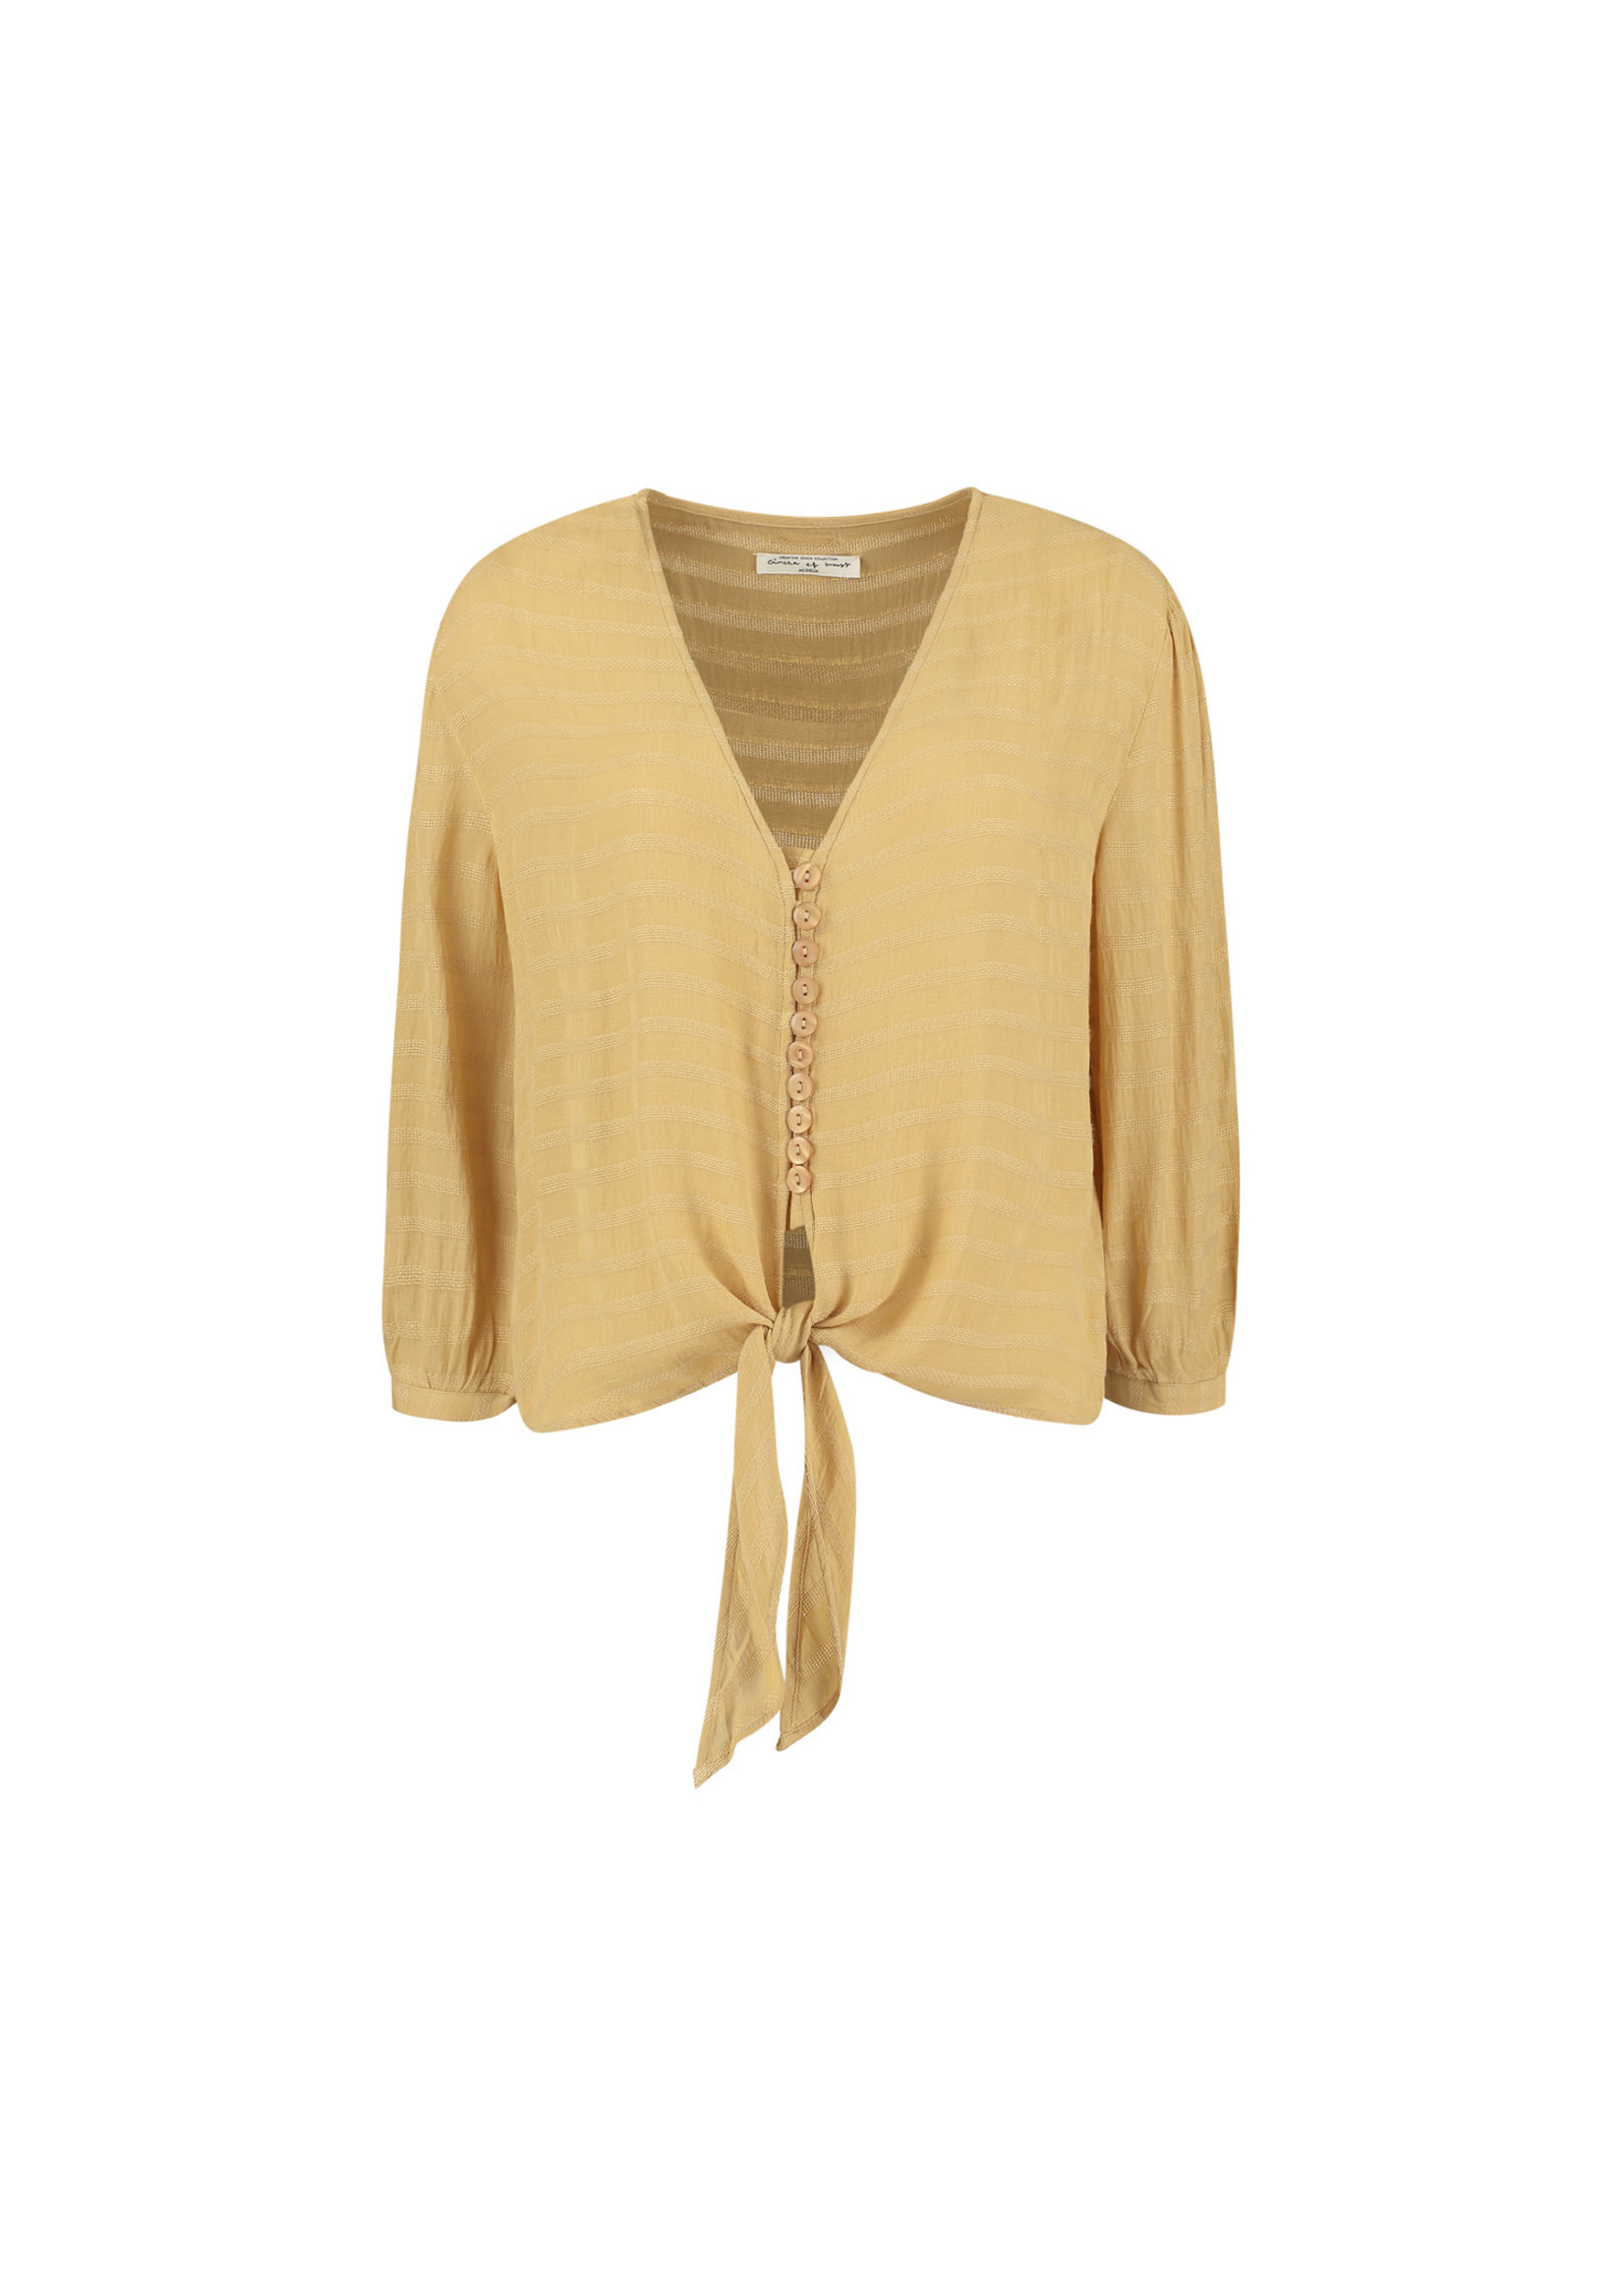 CIRCLE OF TRUST BRIGIT BLOUSE afternoon